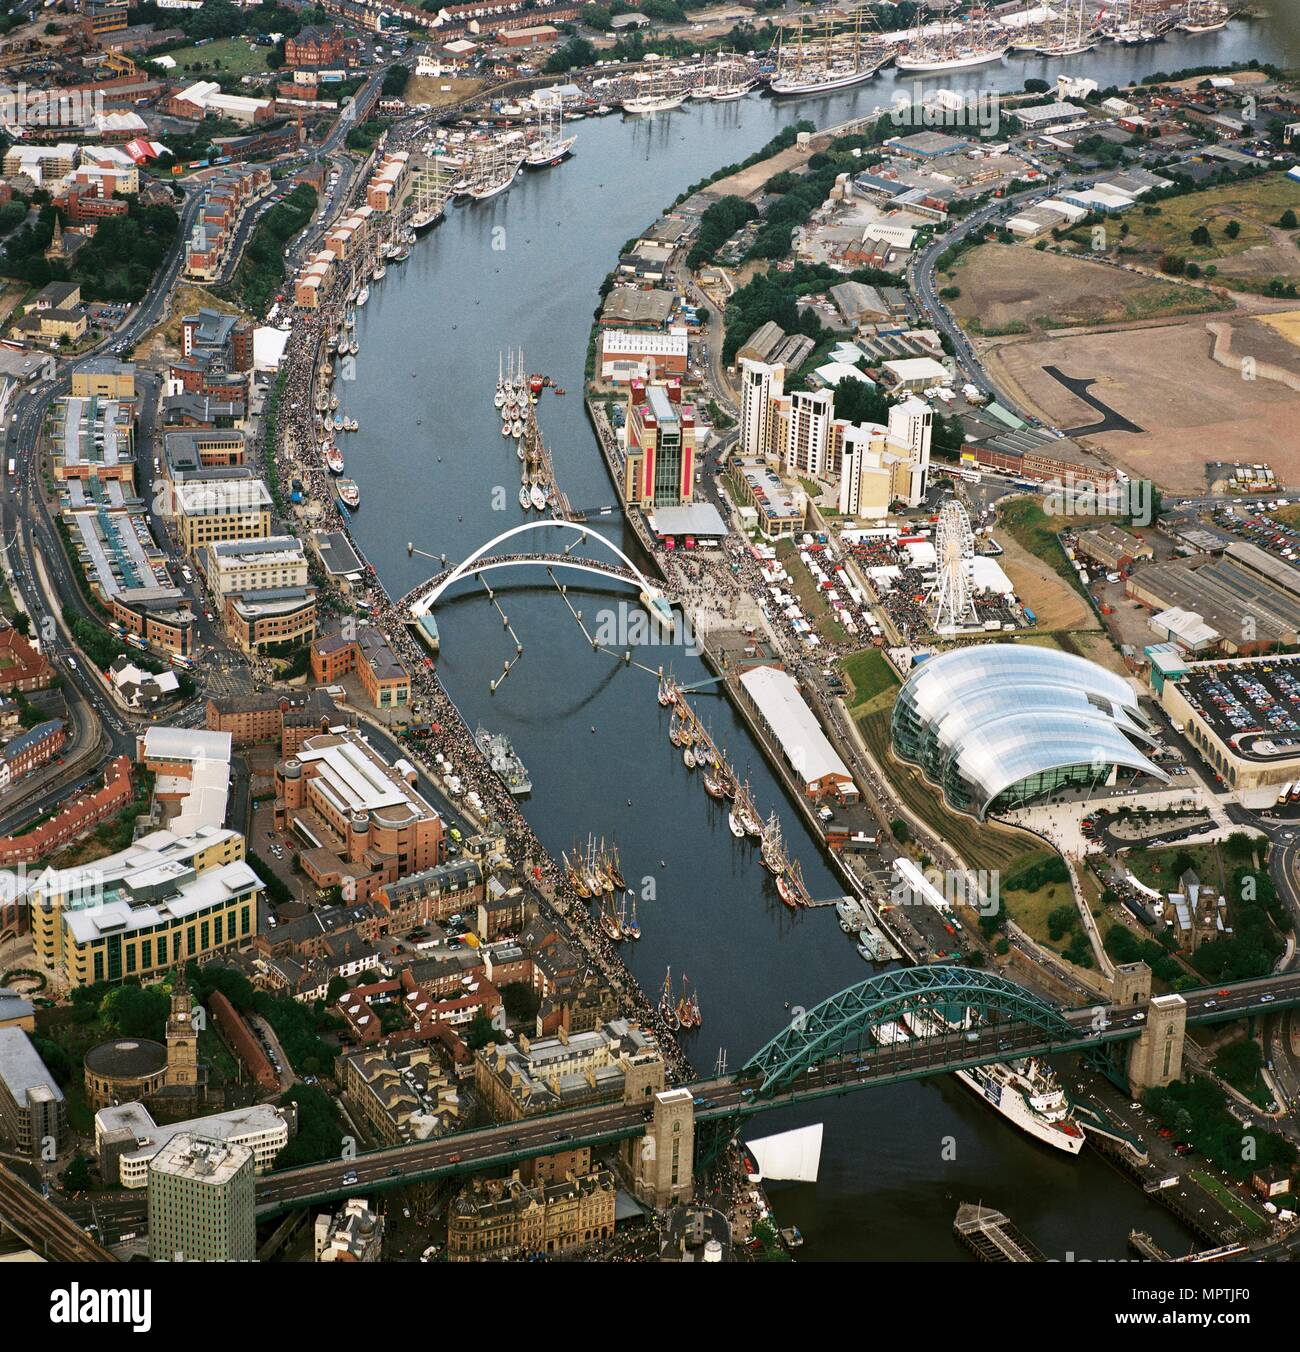 Vessels participating in the Tall Ships Race on the River Tyne, Newcastle-upon-Tyne, 2005. Artist: Unknown. - Stock Image